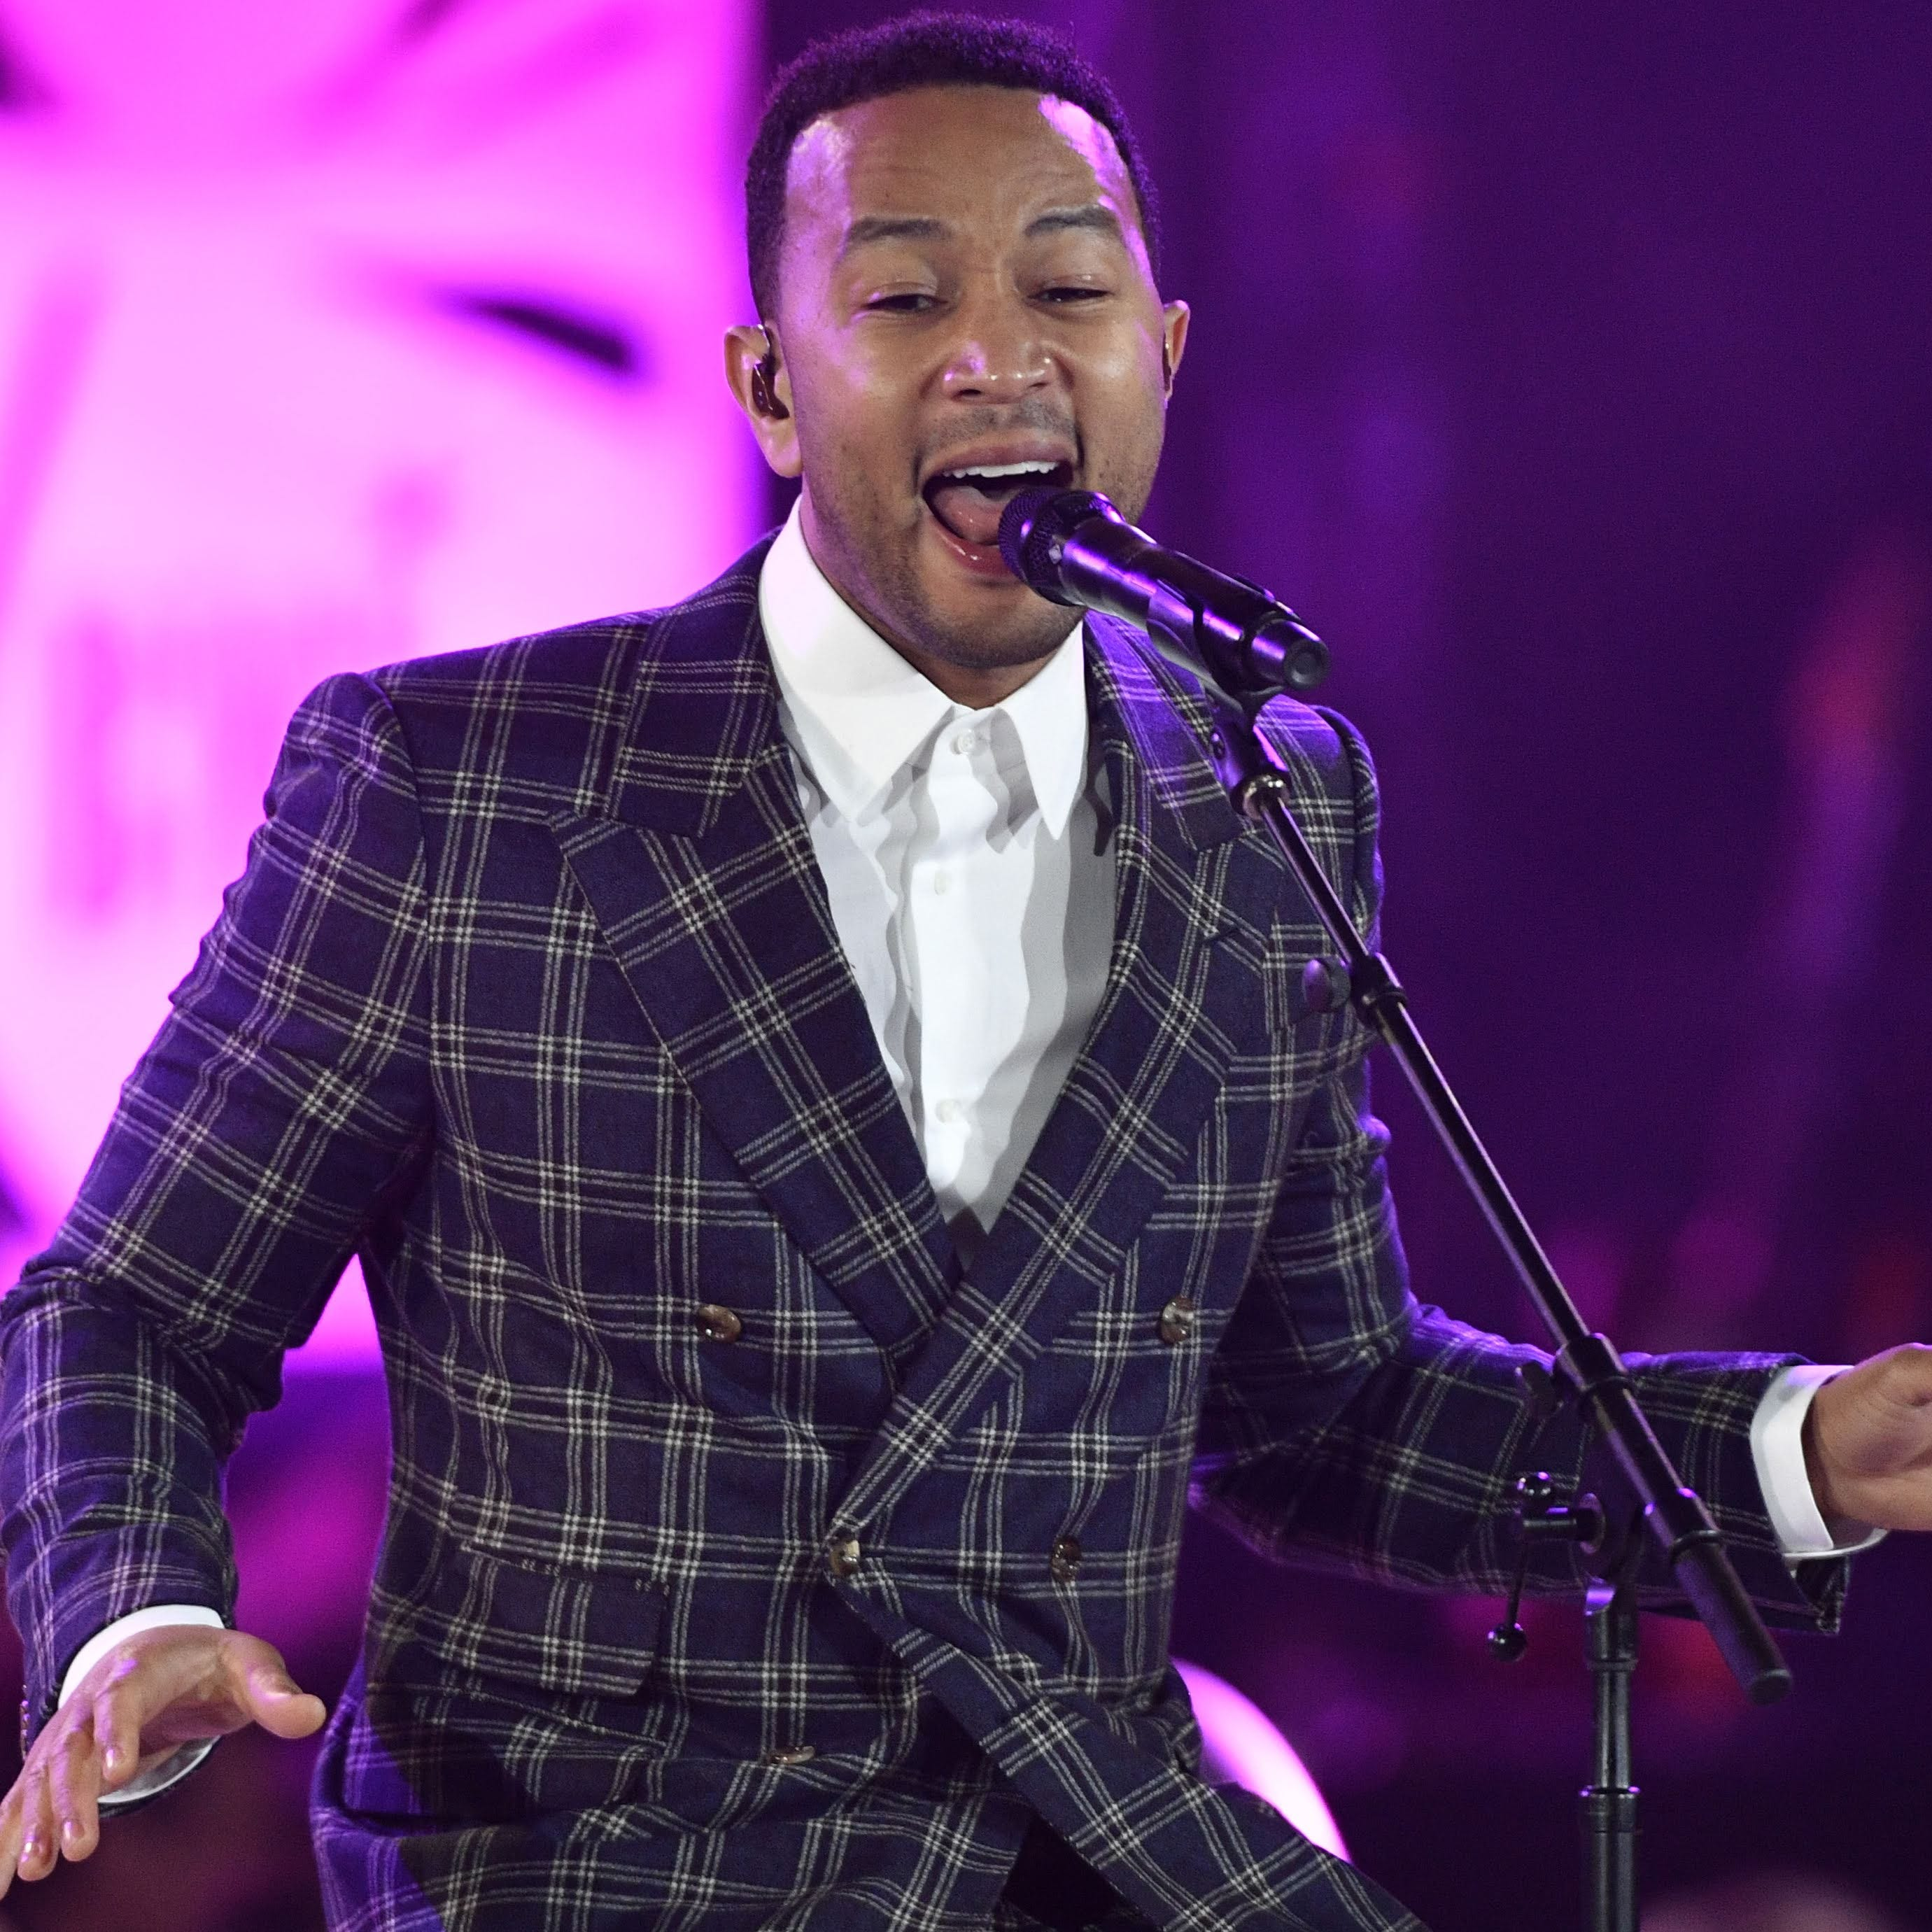 John Legend wants to spark memories of old-school holidays on 'A Legendary Christmas' tour